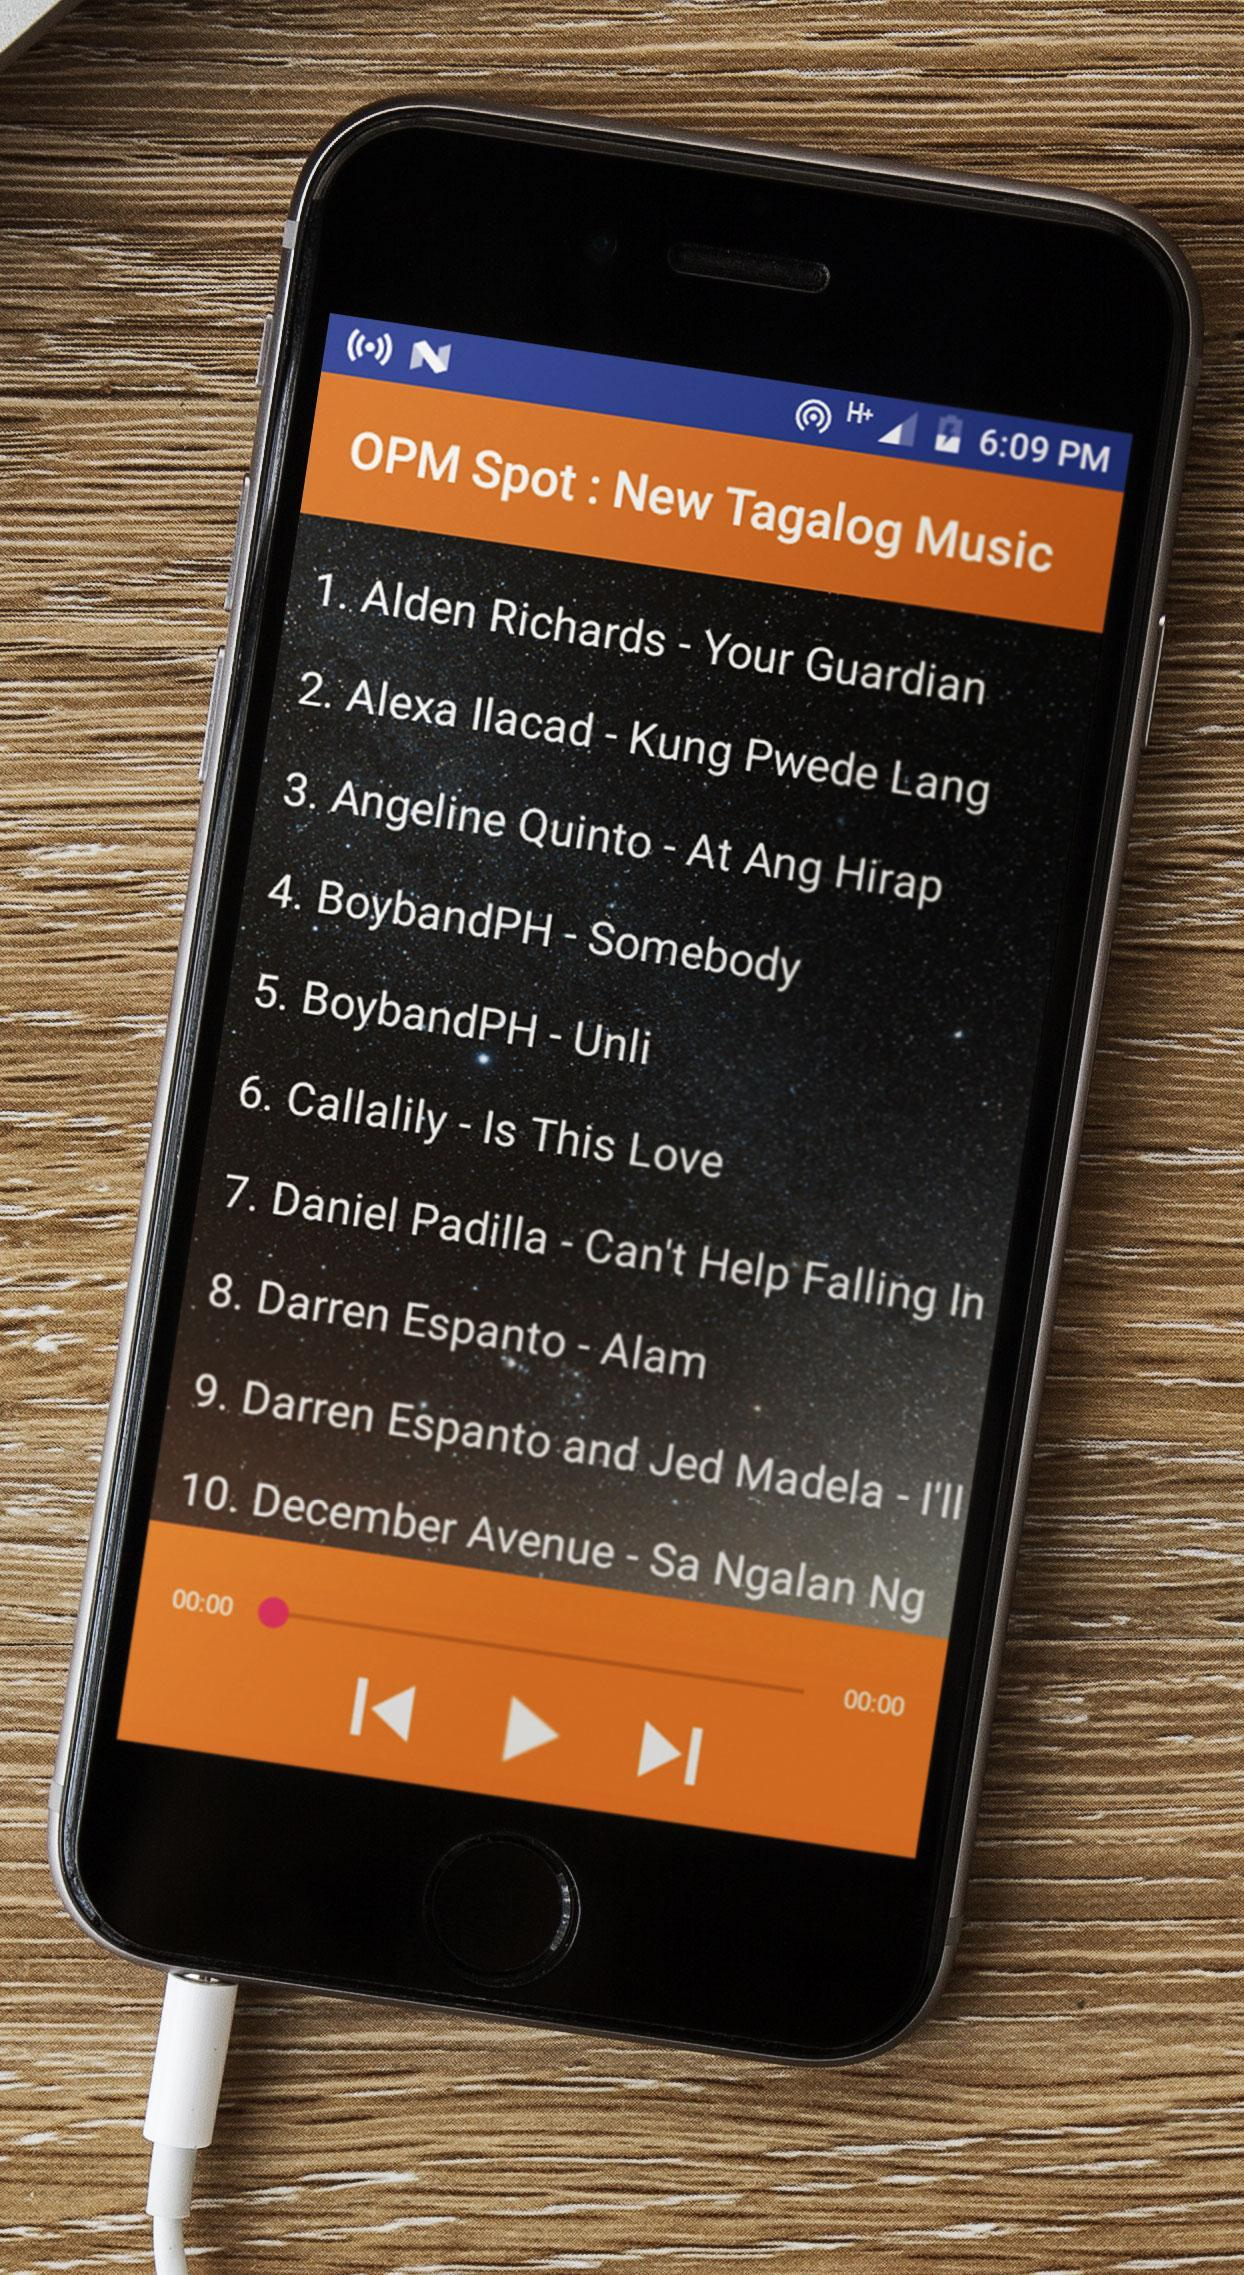 OPM Spot : New Tagalog Filipino Music for Android - APK Download